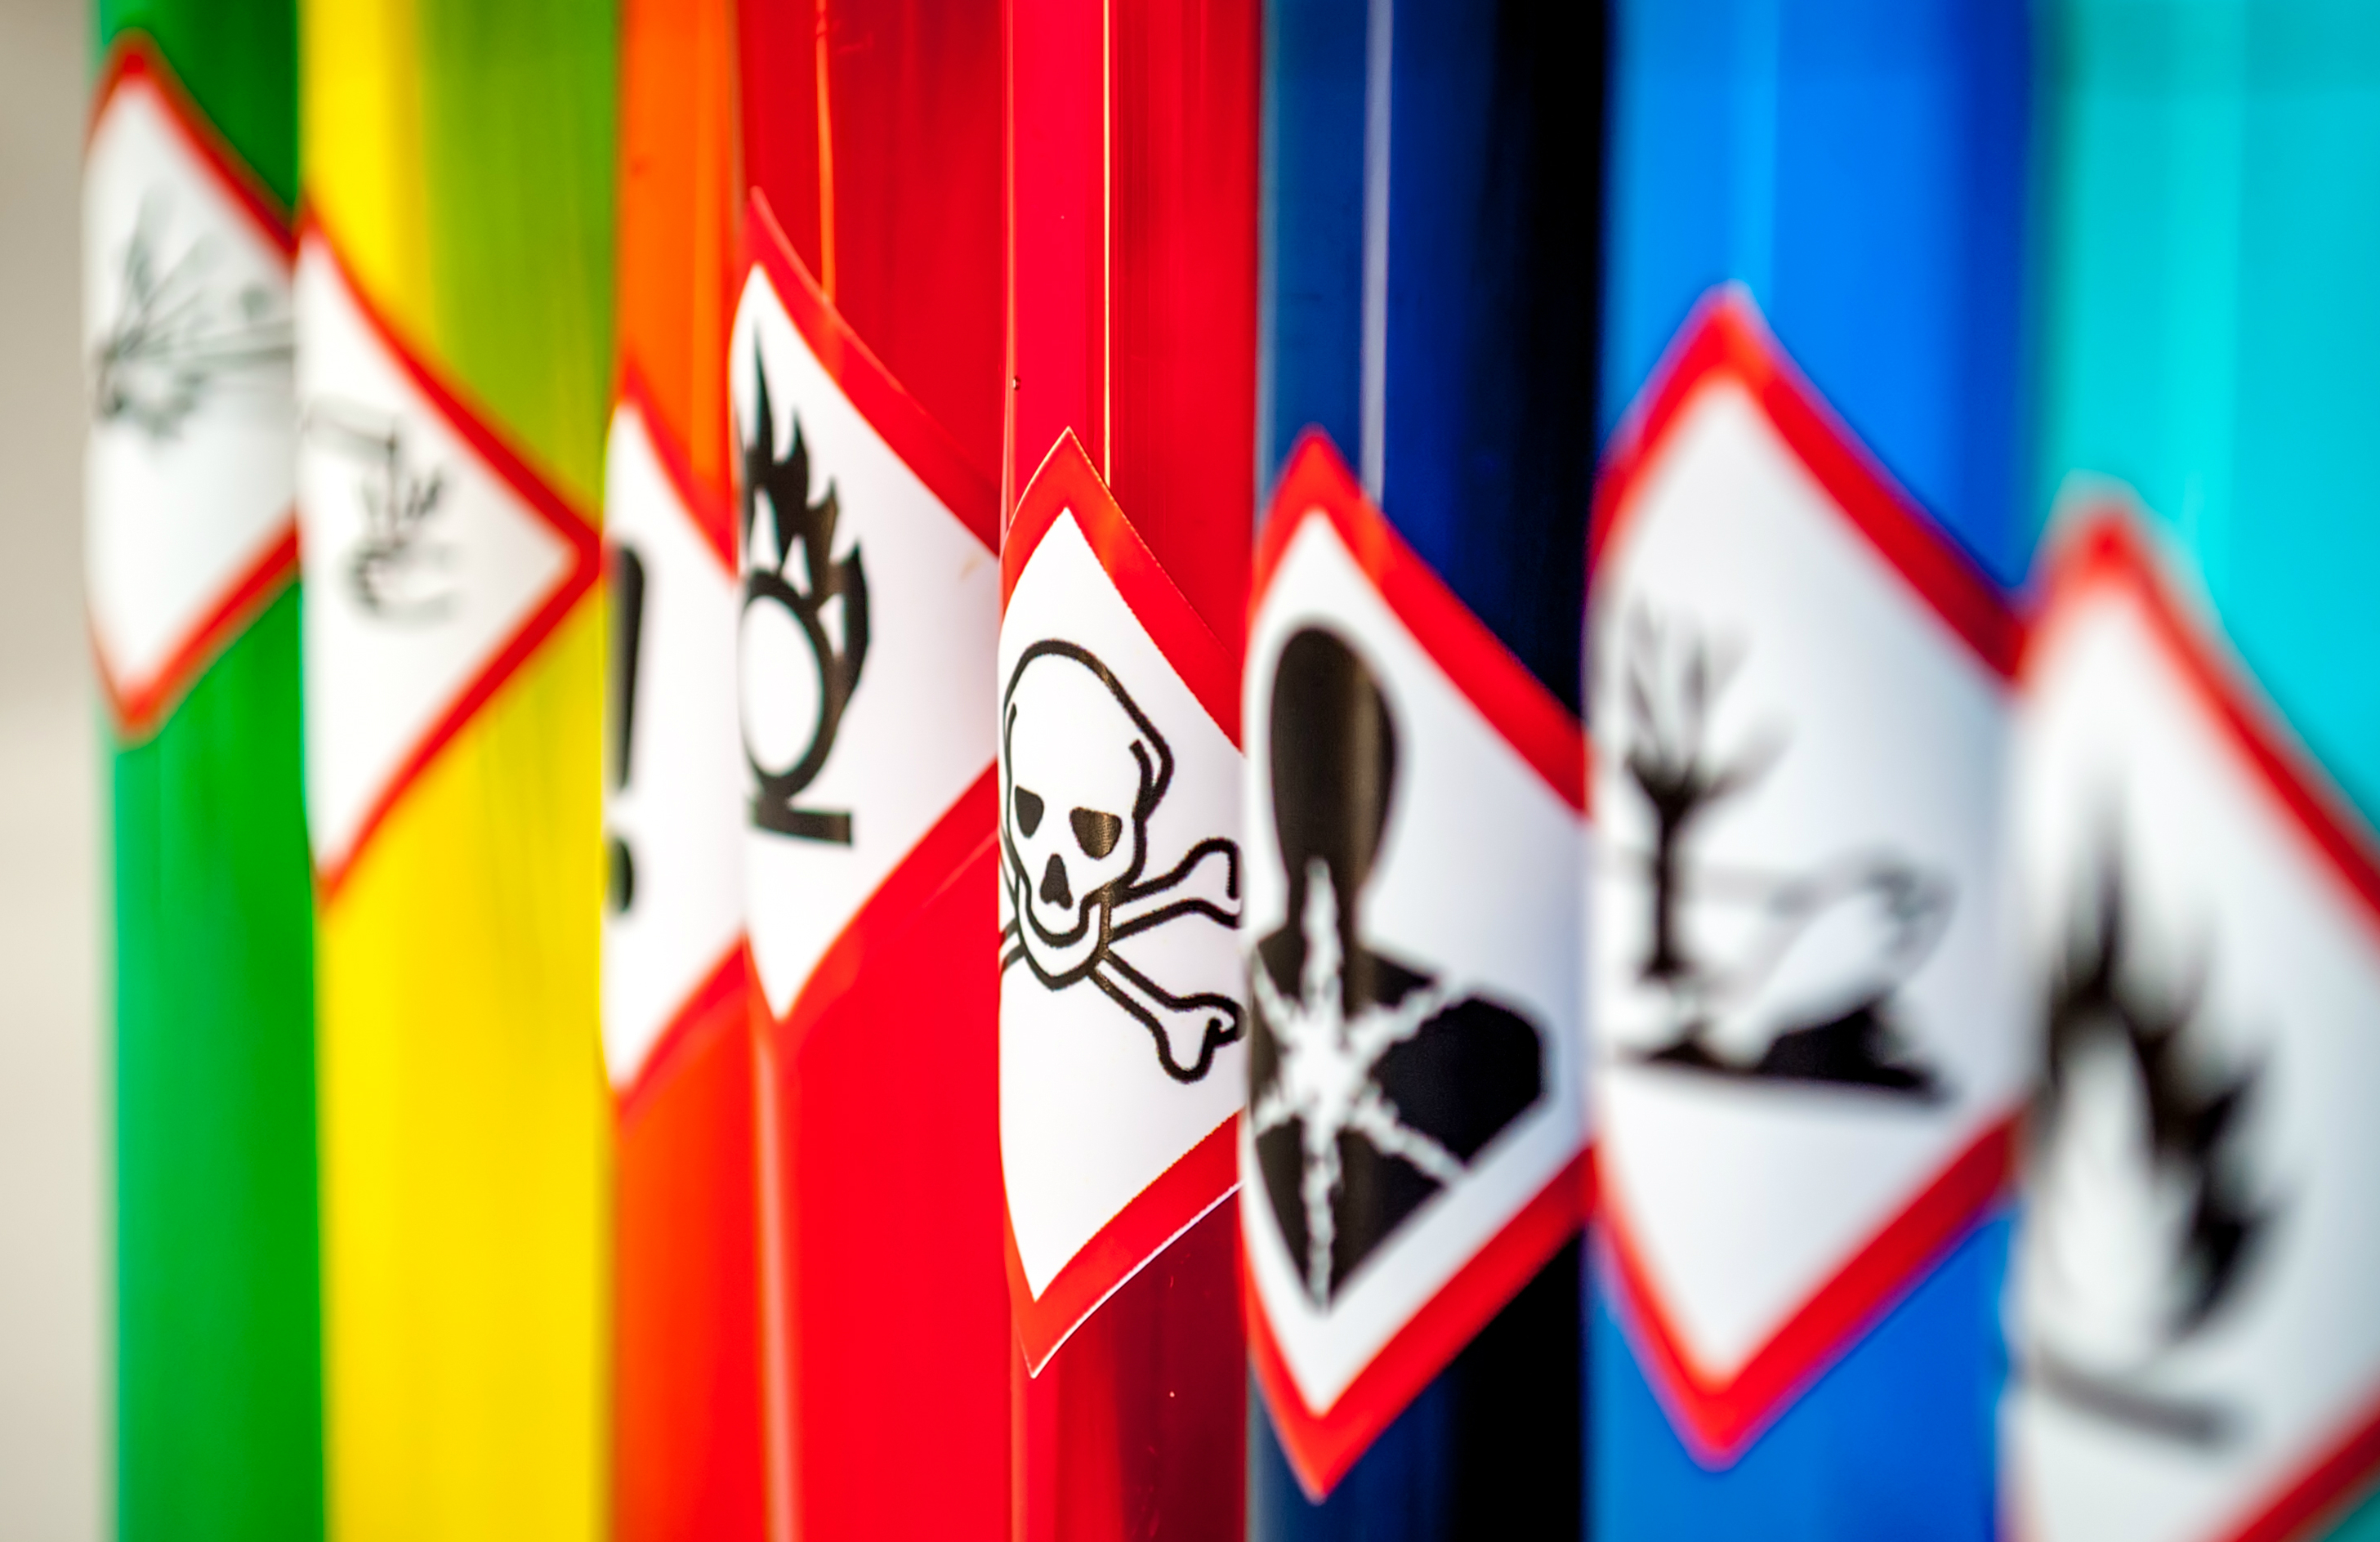 Hazardous Chemicals Safety, occupational health , occupational safety , occupational security , occupational environment , occupational environmental , occupational hygiene , occupational food , occupational quality , occupational online , occupational distant , occupational digital , occupational e-learning , occupational training , occupational awareness , occupational session , occupational course , occupational , occupational , health occupational , health safety , health security , health environment , health environmental , health hygiene , health food , health quality , health online , health distant , health digital , health e-learning , health training , health awareness , health session , health course , health , health , safety occupational , safety health , safety security , safety environment , safety environmental , safety hygiene , safety food , safety quality , safety online , safety distant , safety digital , safety e-learning , safety training , safety awareness , safety session , safety course , safety , safety , security occupational , security health , security safety , security environment , security environmental , security hygiene , security food , security quality , security online , security distant , security digital , security e-learning , security training , security awareness , security session , security course , security , security , environment occupational , environment health , environment safety , environment security , environment environmental , environment hygiene , environment food , environment quality , environment online , environment distant , environment digital , environment e-learning , environment training , environment awareness , environment session , environment course , environment , environment , environmental occupational , environmental health , environmental safety , environmental security , environmental environment , environmental hygiene , environmental food , environmental quality , environmental online , environmental distant , environmental digital , environmental e-learning , environmental training , environmental awareness , environmental session , environmental course , environmental , environmental , hygiene occupational , hygiene health , hygiene safety , hygiene security , hygiene environment , hygiene environmental , hygiene food , hygiene quality , hygiene online , hygiene distant , hygiene digital , hygiene e-learning , hygiene training , hygiene awareness , hygiene session , hygiene course , hygiene , hygiene , food occupational , food health , food safety , food security , food environment , food environmental , food hygiene , food quality , food online , food distant , food digital , food e-learning , food training , food awareness , food session , food course , food , food , quality occupational , quality health , quality safety , quality security , quality environment , quality environmental , quality hygiene , quality food , quality online , quality distant , quality digital , quality e-learning , quality training , quality awareness , quality session , quality course , quality , quality , online occupational , online health , online safety , online security , online environment , online environmental , online hygiene , online food , online quality , online distant , online digital , online e-learning , online training , online awareness , online session , online course , online , online , distant occupational , distant health , distant safety , distant security , distant environment , distant environmental , distant hygiene , distant food , distant quality , distant online , distant digital , distant e-learning , distant training , distant awareness , distant session , distant course , distant , distant , digital occupational , digital health , digital safety , digital security , digital environment , digital environmental , digital hygiene , digital food , digital quality , digital online , digital distant , digital e-learning , digital training , digital awareness , digital session , digital course , digital , digital , e-learning occupational , e-learning health , e-learning safety , e-learning security , e-learning environment , e-learning environmental , e-learning hygiene , e-learning food , e-learning quality , e-learning online , e-learning distant , e-learning digital , e-learning training , e-learning awareness , e-learning session , e-learning course , e-learning , e-learning , training occupational , training health , training safety , training security , training environment , training environmental , training hygiene , training food , training quality , training online , training distant , training digital , training e-learning , training awareness , training session , training course , training , training , awareness occupational , awareness health , awareness safety , awareness security , awareness environment , awareness environmental , awareness hygiene , awareness food , awareness quality , awareness online , awareness distant , awareness digital , awareness e-learning , awareness training , awareness session , awareness course , awareness , awareness , session occupational , session health , session safety , session security , session environment , session environmental , session hygiene , session food , session quality , session online , session distant , session digital , session e-learning , session training , session awareness , session course , session , session , course occupational , course health , course safety , course security , course environment , course environmental , course hygiene , course food , course quality , course online , course distant , course digital , course e-learning , course training , course awareness , course session , course , course , occupational , health , safety , security , environment , environmental , hygiene , food , quality , online , distant , digital , e-learning , training , awareness , session , course , , occupational , health , safety , security , environment , environmental , hygiene , food , quality , online , distant , digital , e-learning , training , awareness , session , course